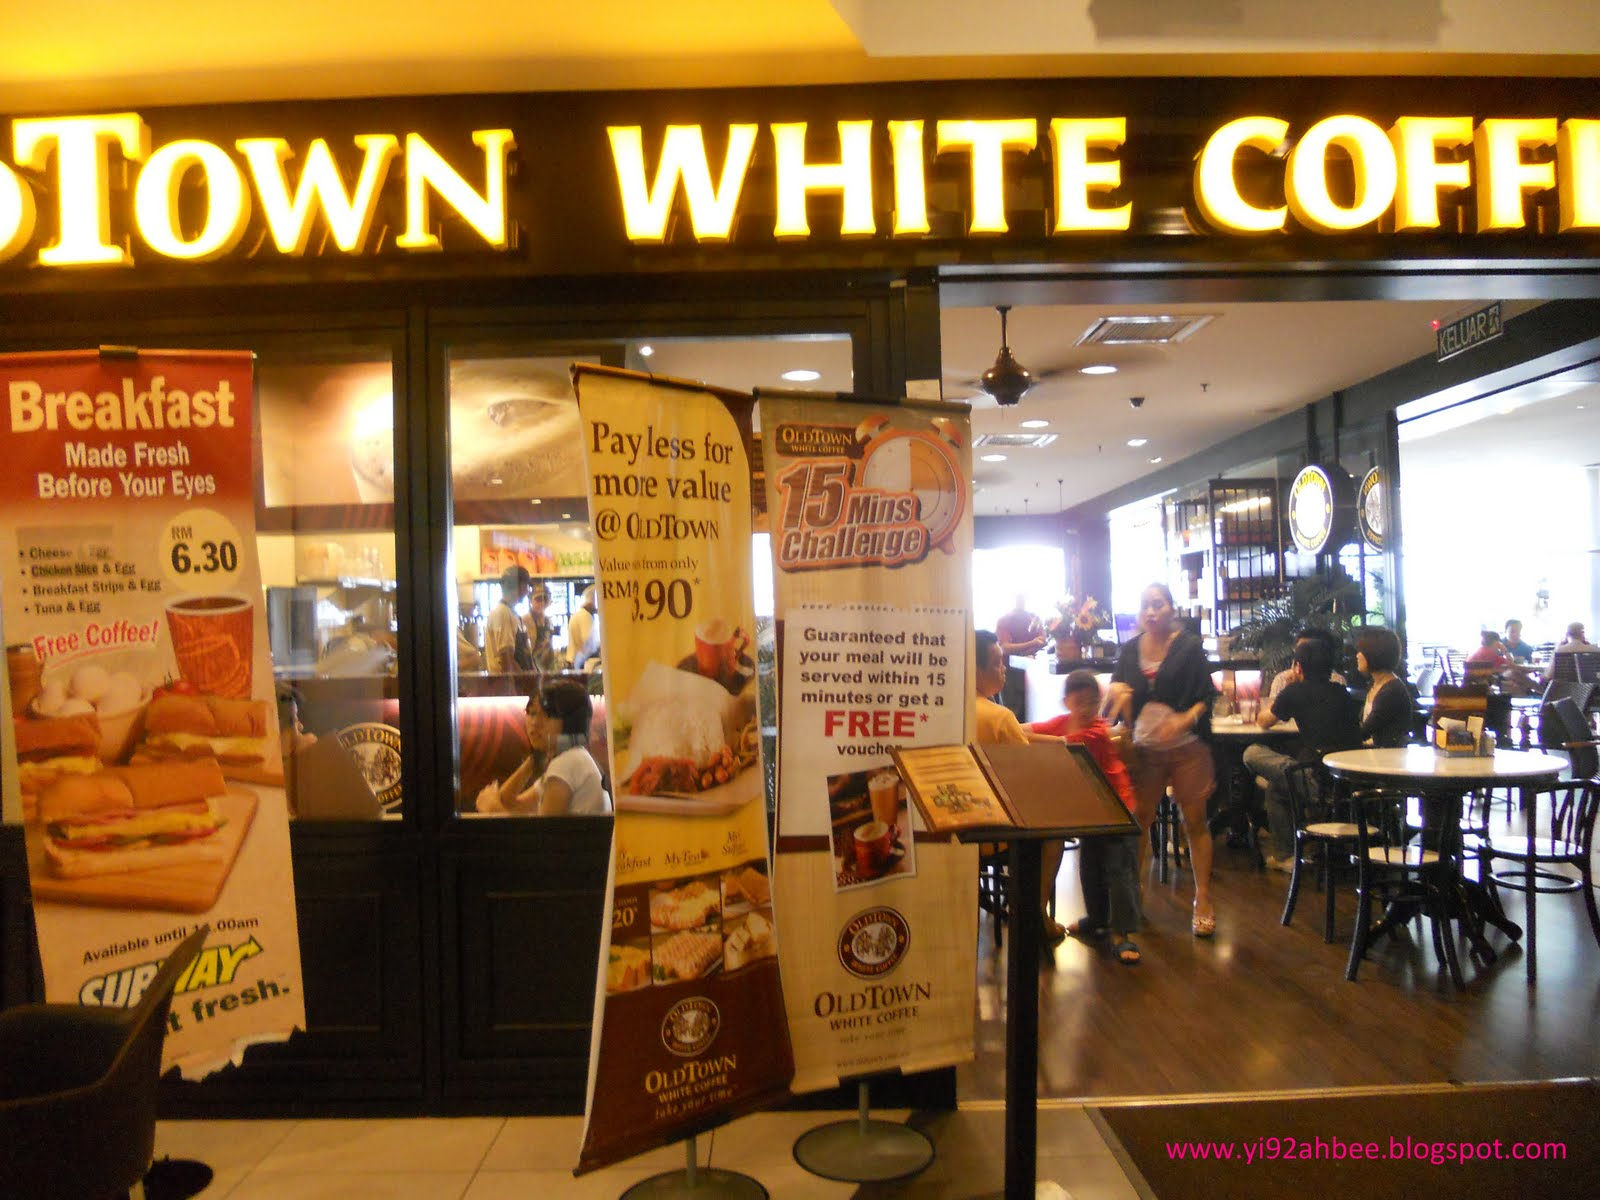 old town white coffee india Things to do near old town white coffee on tripadvisor: see 12,658 reviews and 8,135 candid photos of things to do near old town white coffee in ipoh, perak.